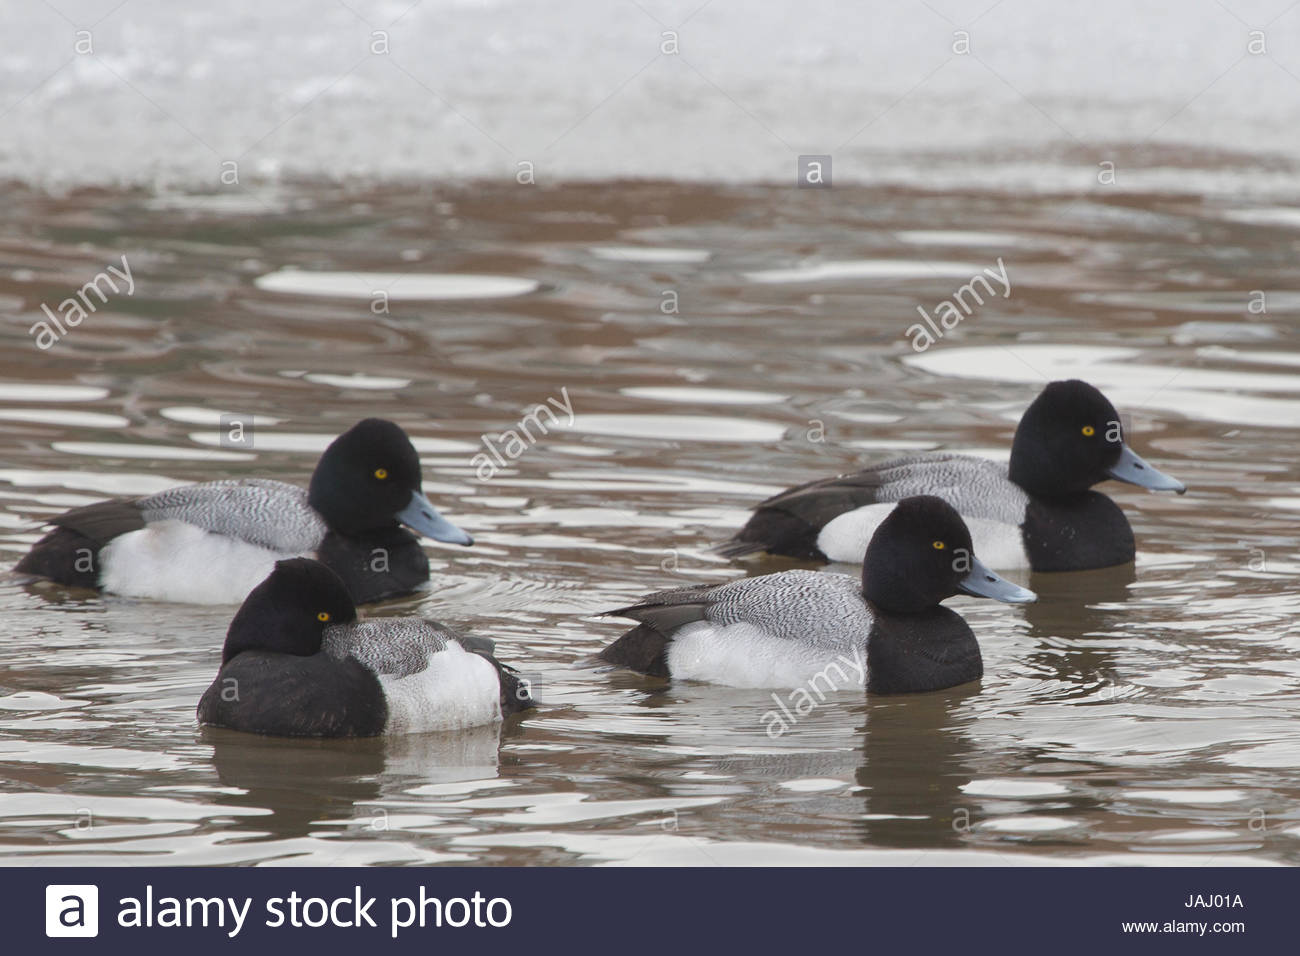 A group of lesser scaup ducks, Aythya affinis, swimming in a semi-frozen river. Stock Photo